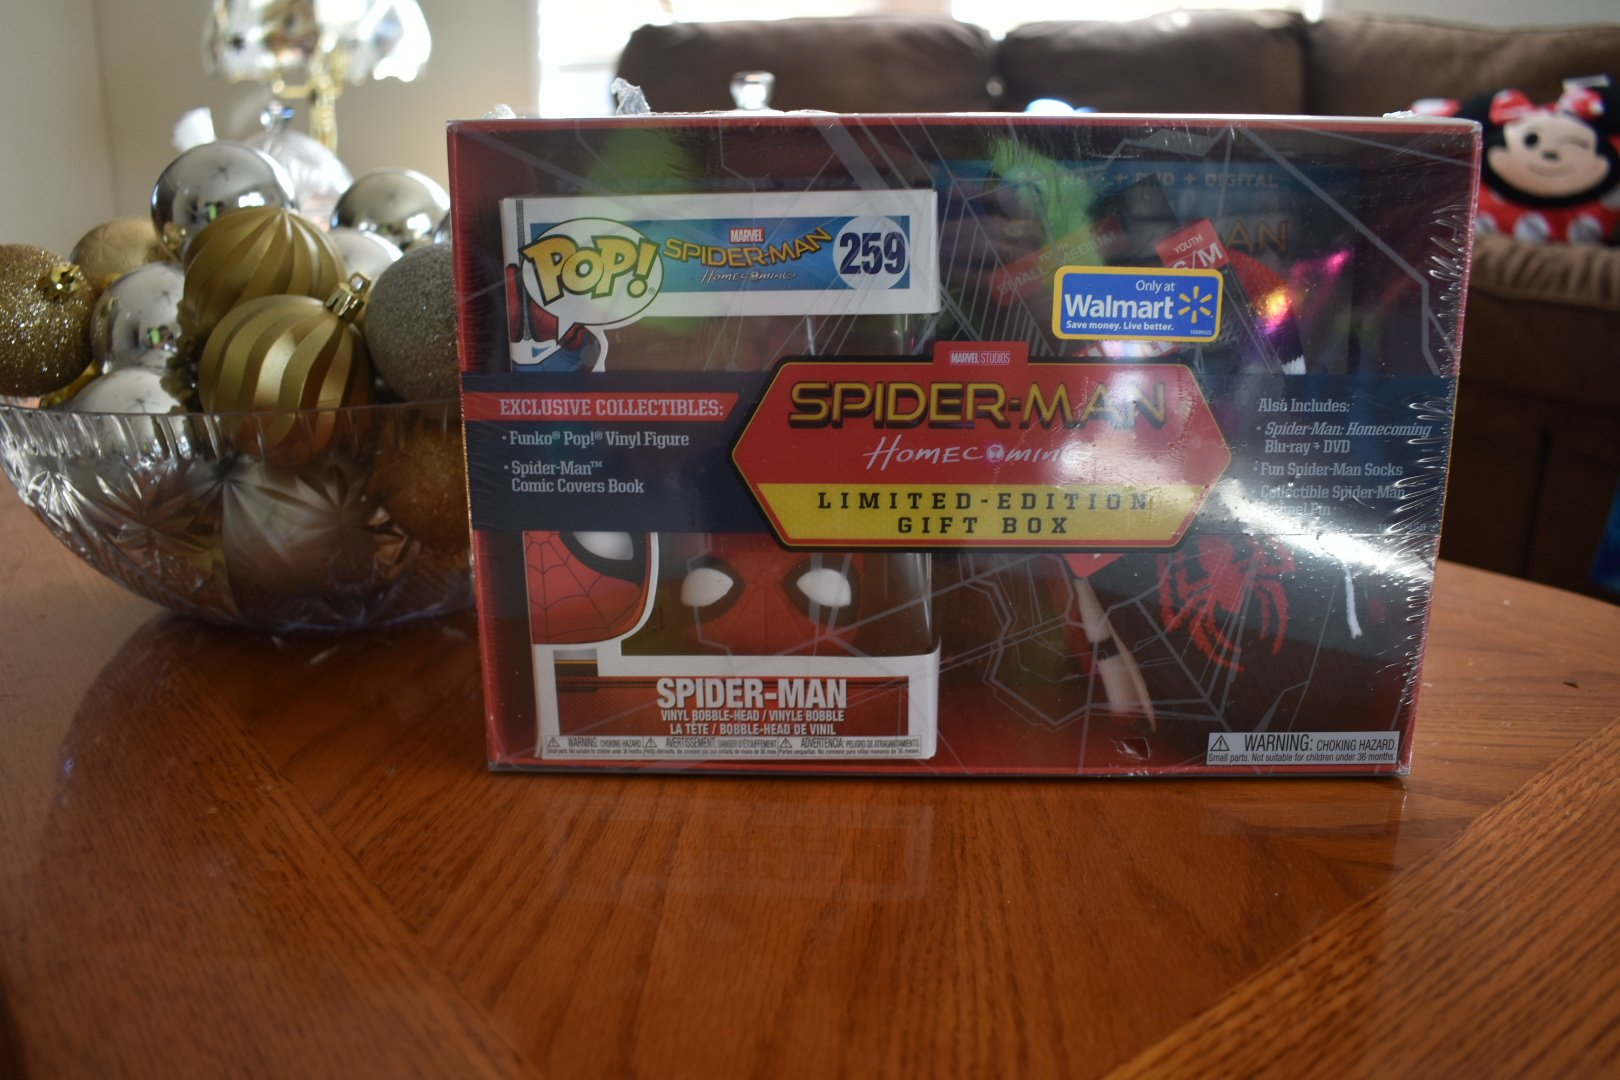 New Exclusive Spider Man Homecoming Limited Edition Gift Box From